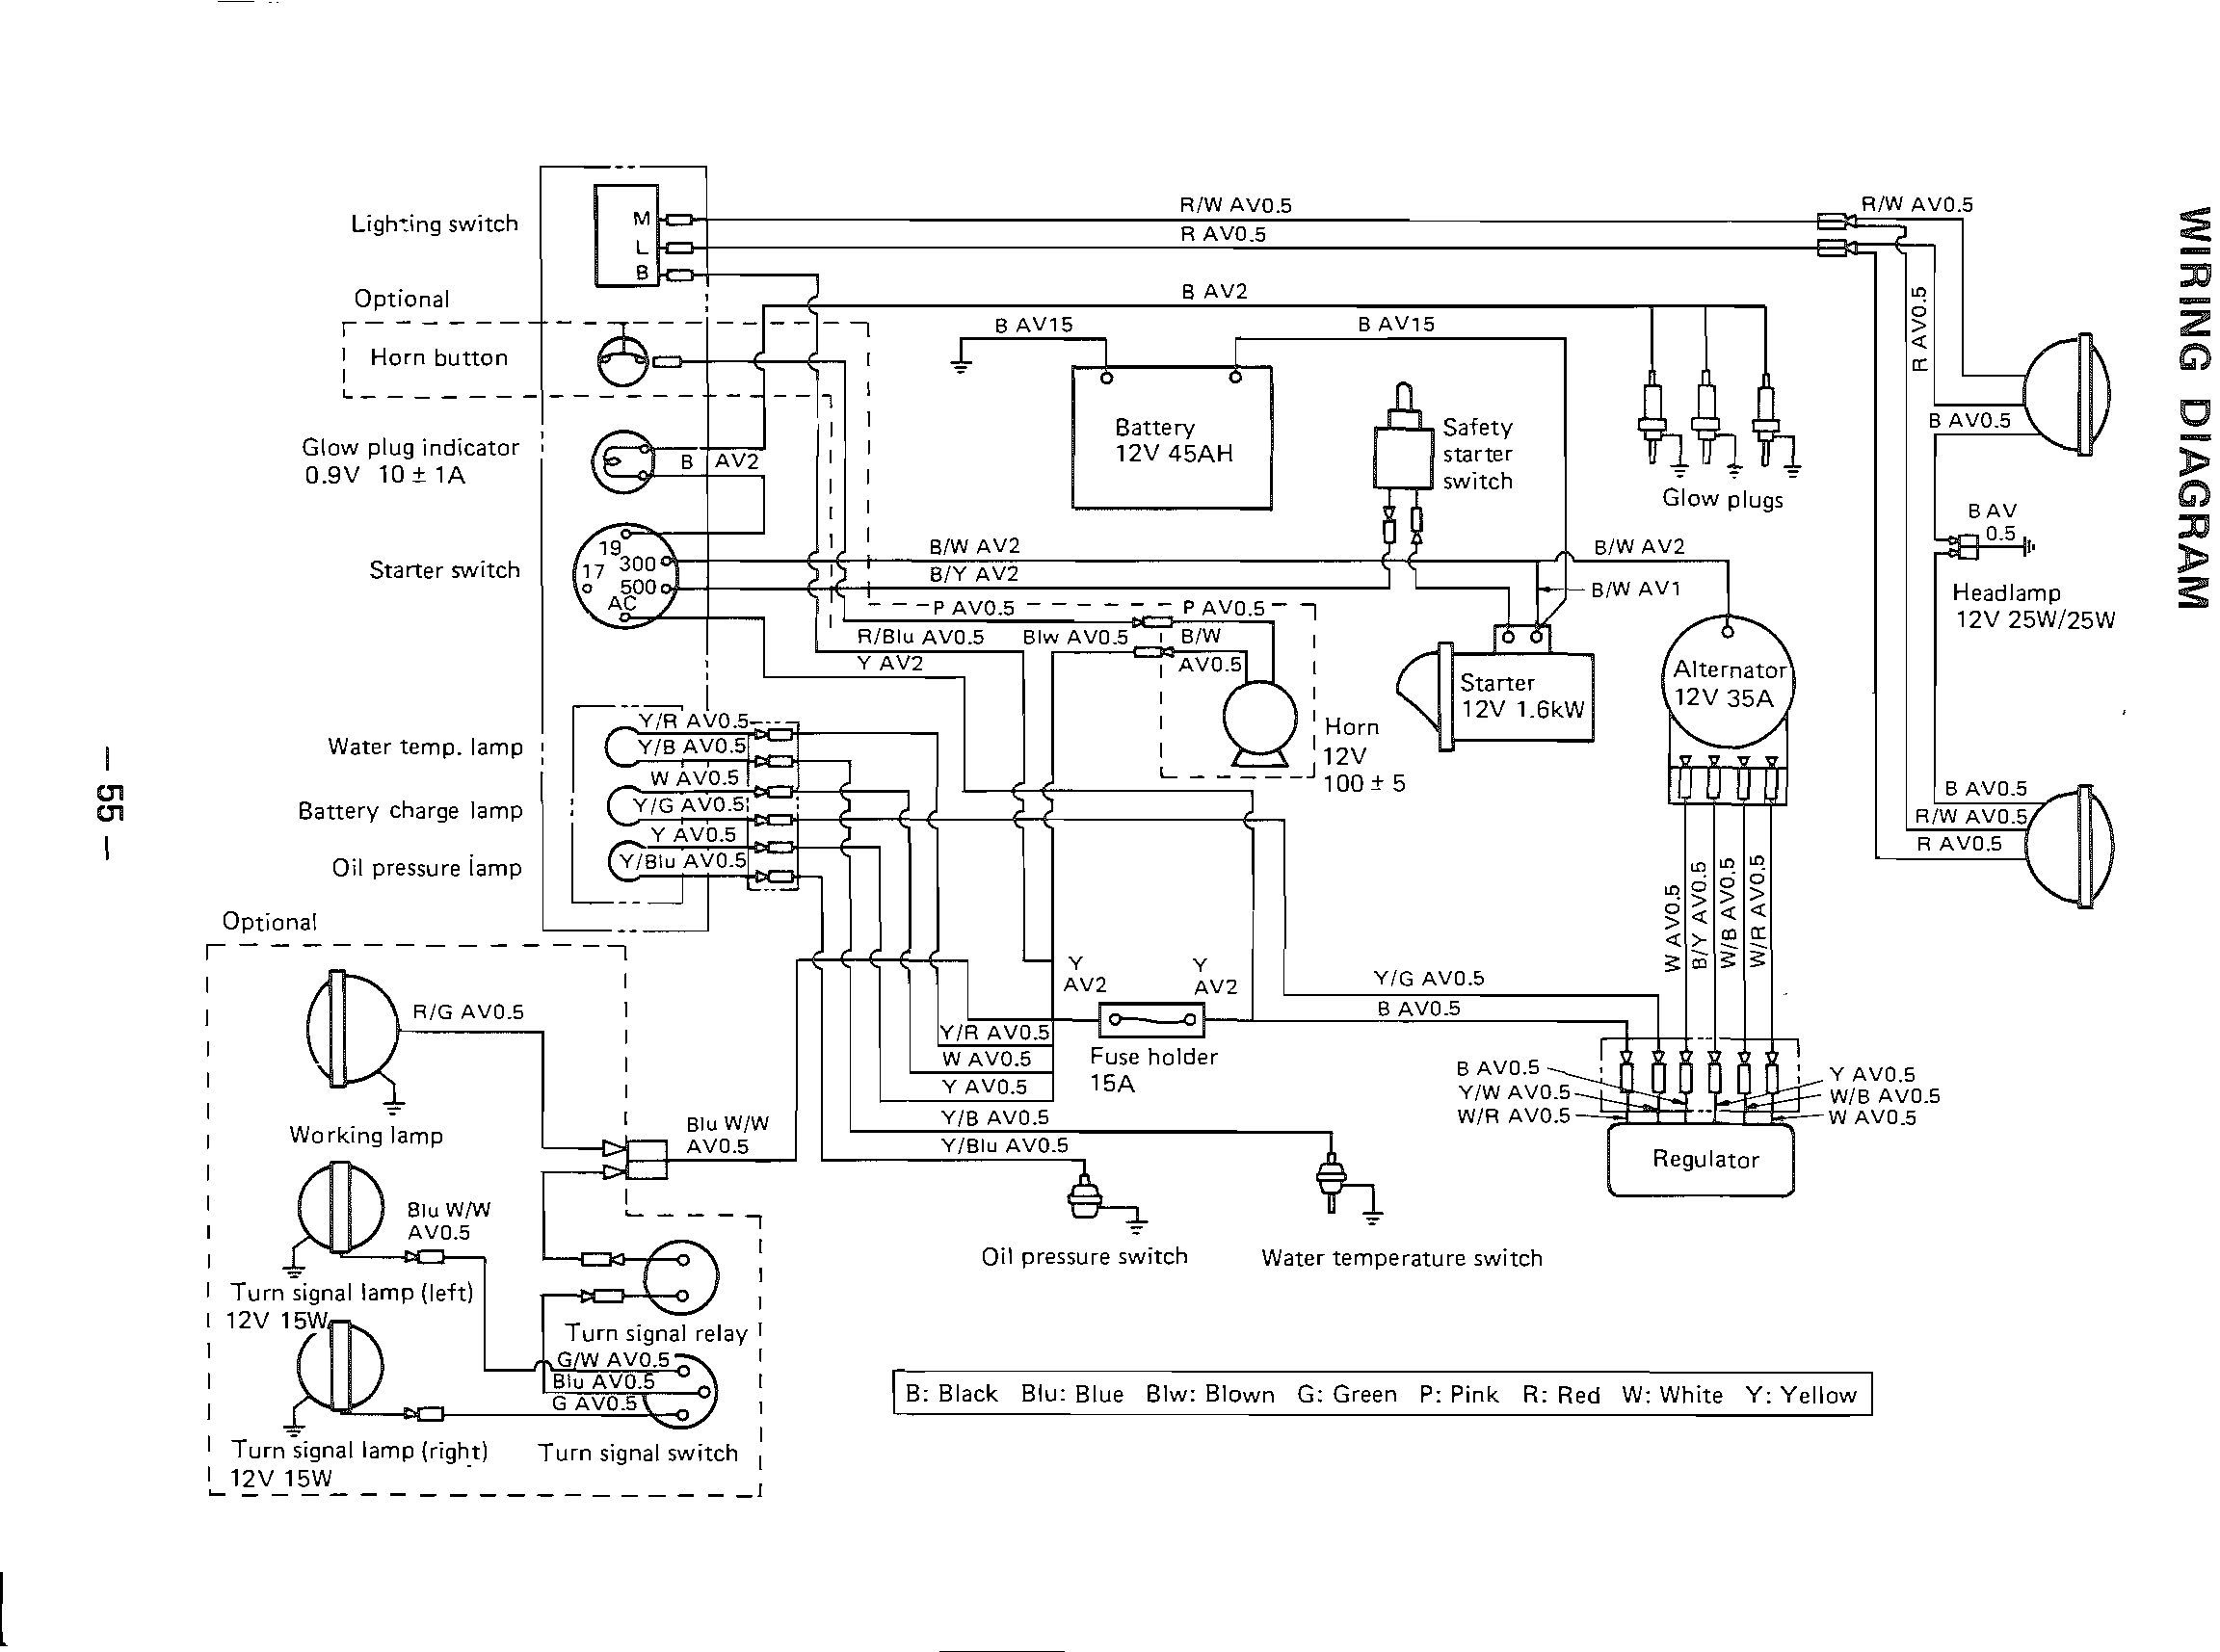 Peachy Mf 240 Starter Diagram Basic Electronics Wiring Diagram Wiring Cloud Loplapiotaidewilluminateatxorg